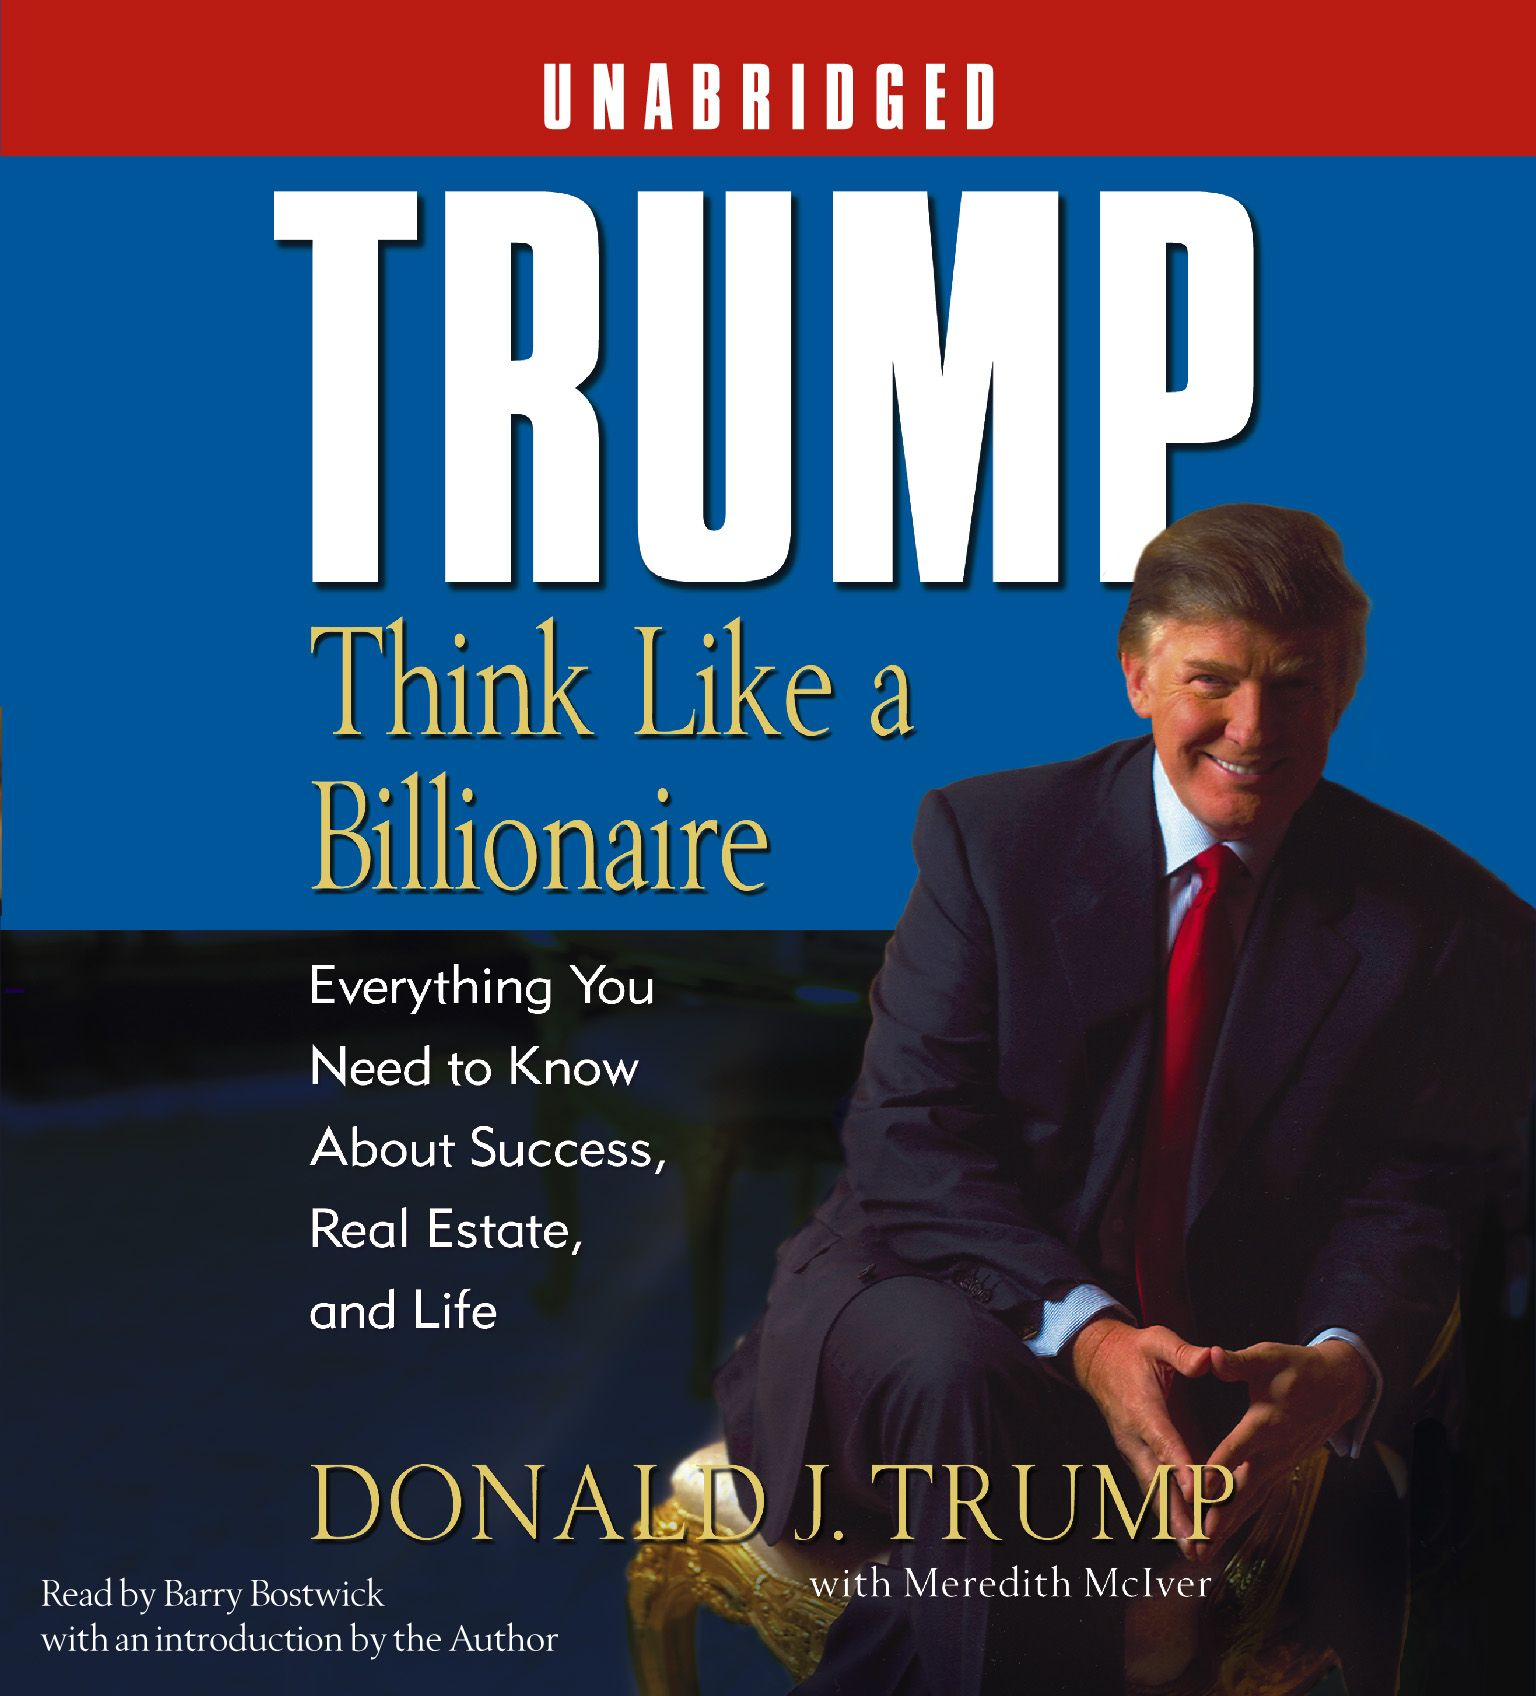 The audio book trump think like a billionaire by donald j trump the audio book trump think like a billionaire by donald j trump malvernweather Image collections